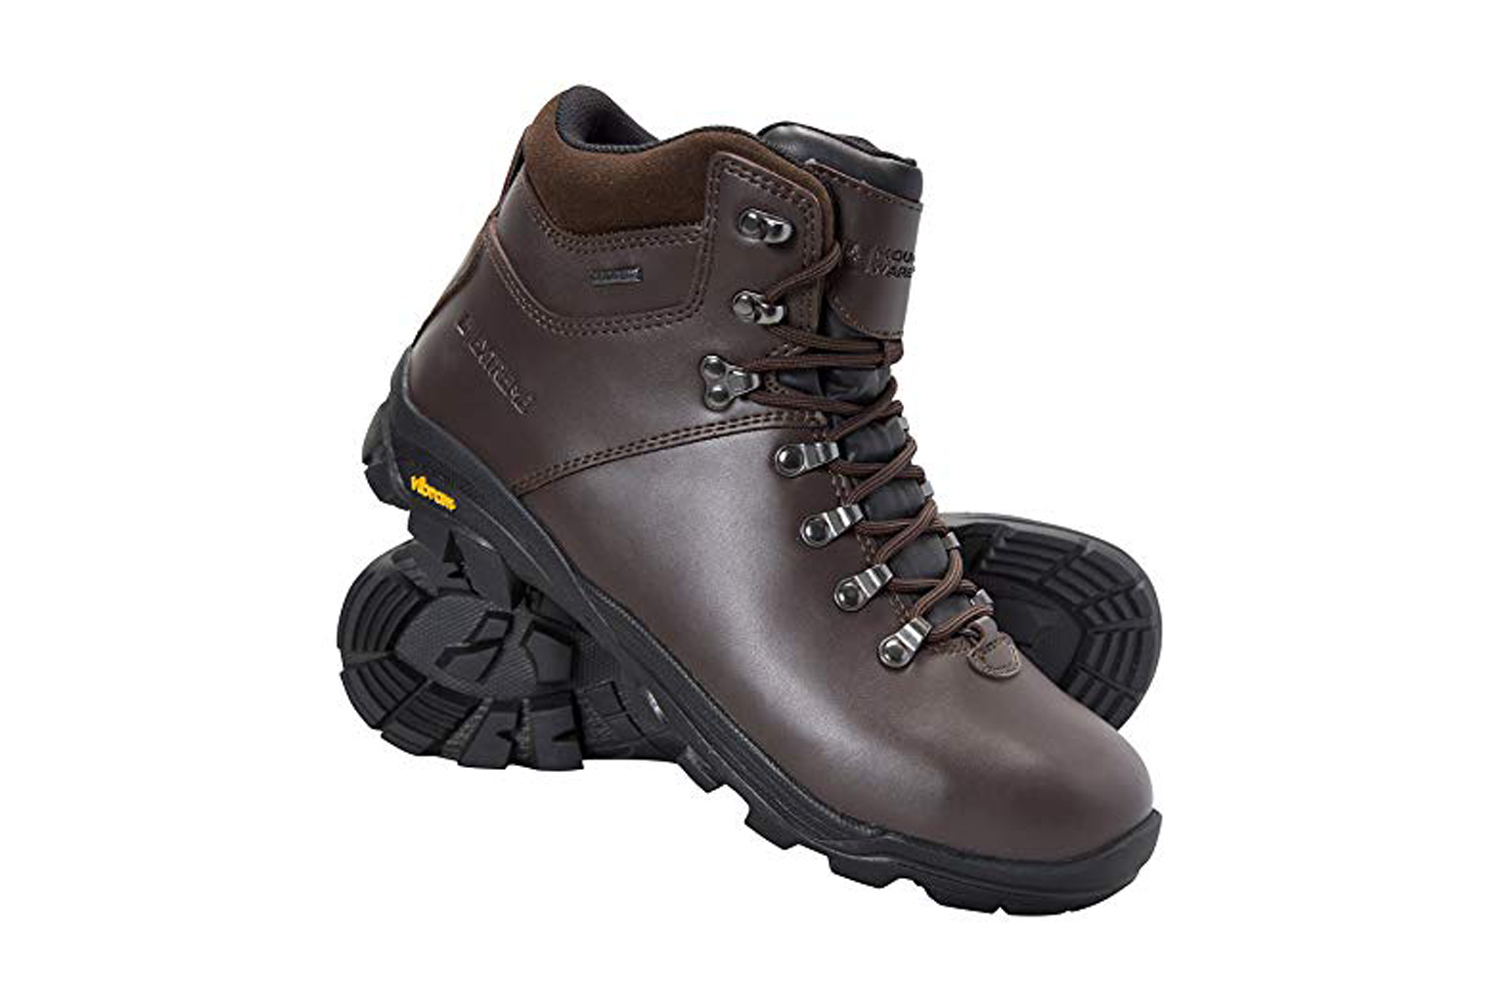 Breacon Women's Waterproof Vibram Boots, £79.99 down from £139.99, mountainwarehouse.com